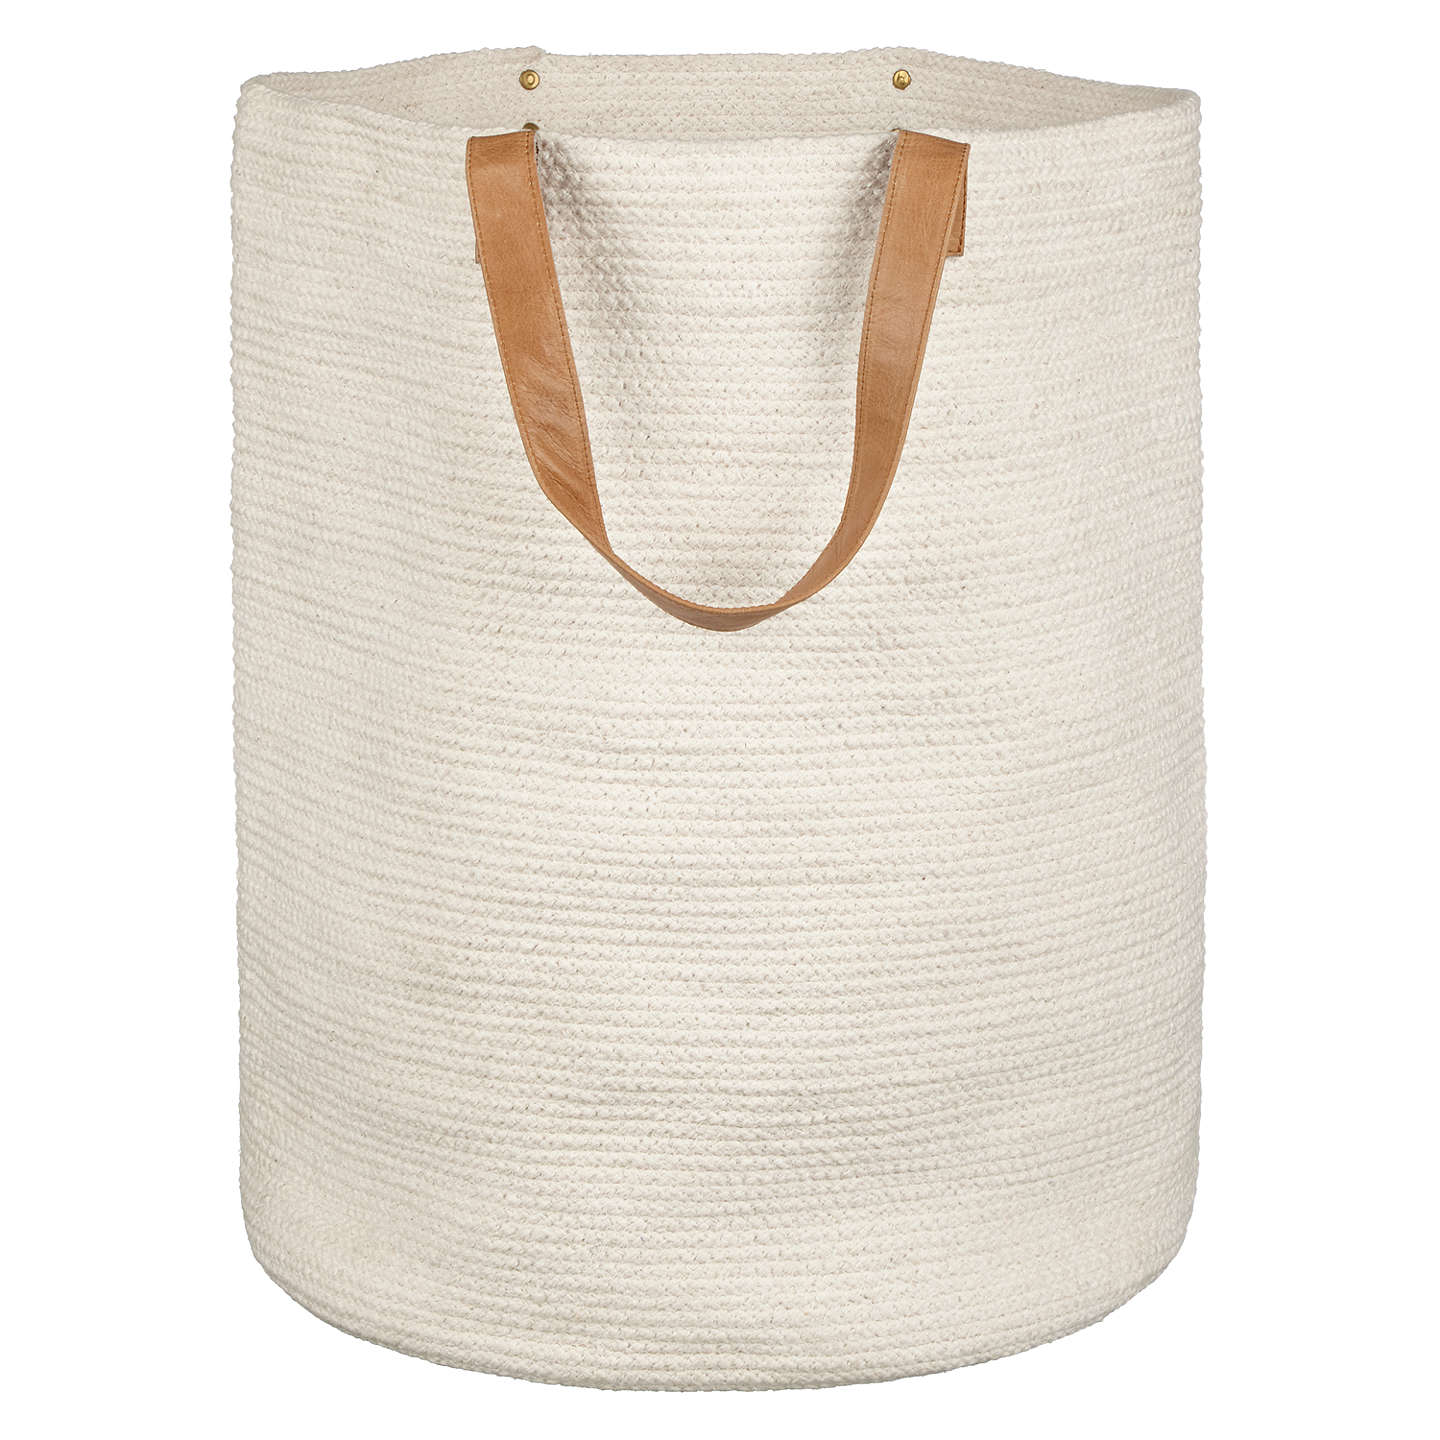 BuyJohn Lewis Croft Collection Storage Bag with Handles Online at johnlewis.com